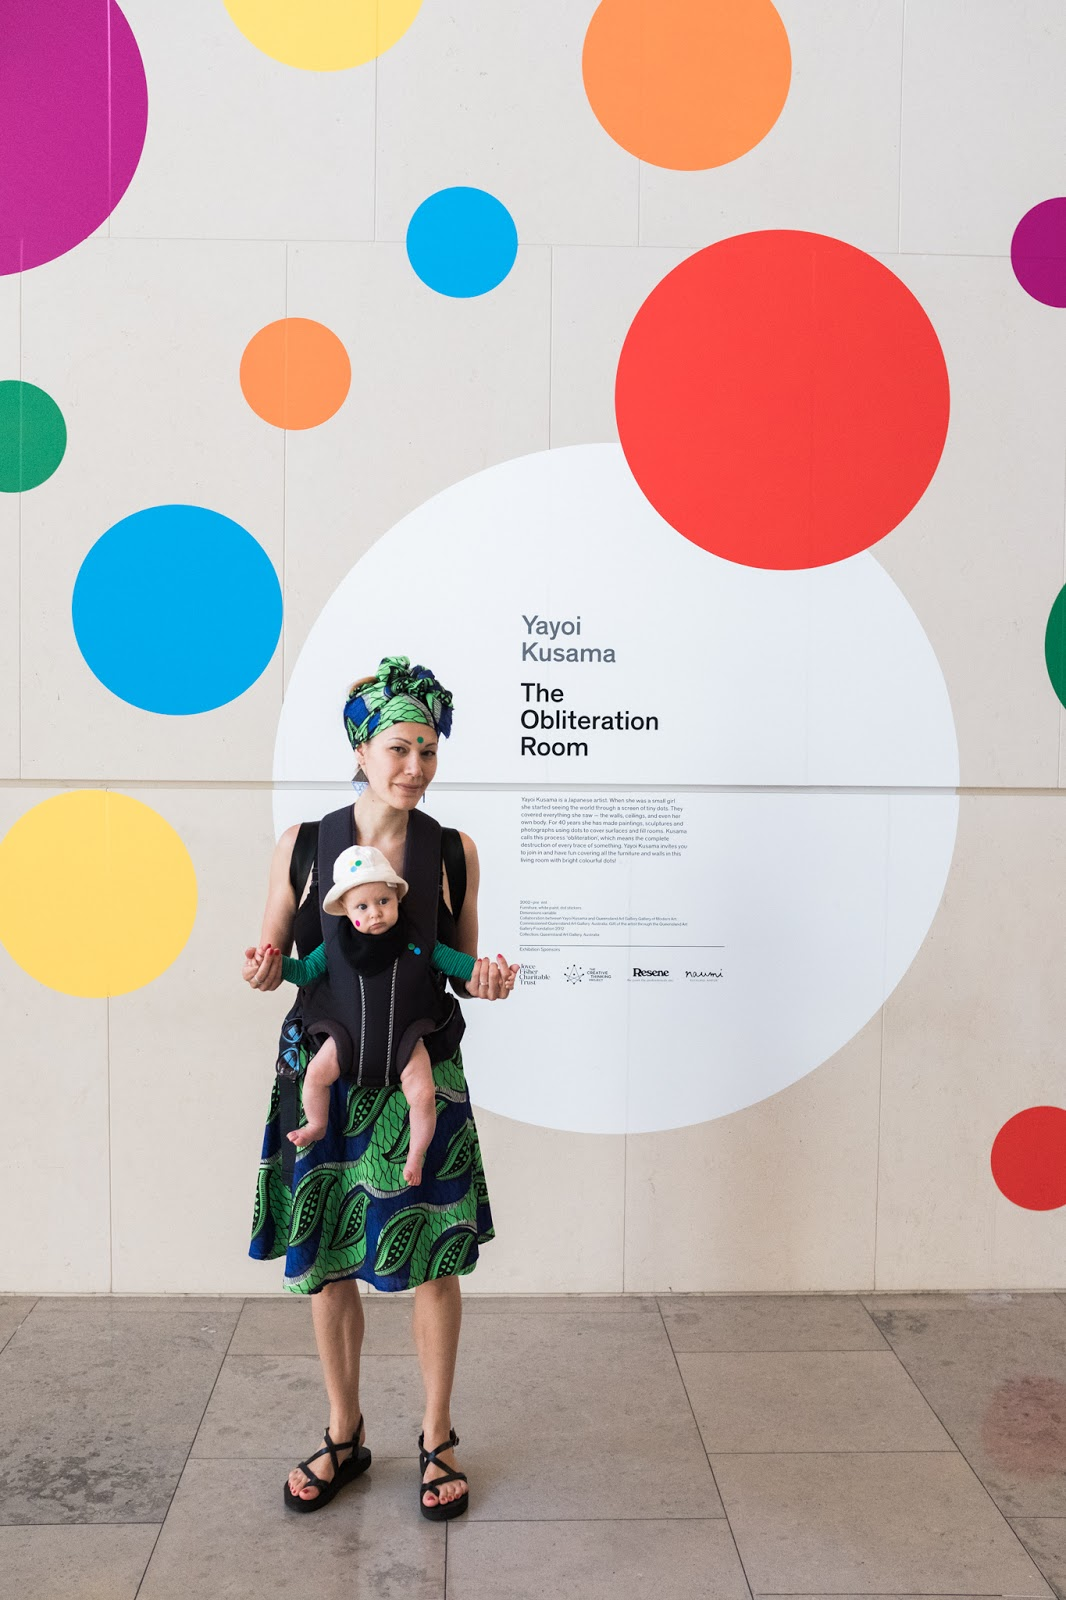 Build up of dots in a dizzying array of color as visitors apply colored stickers to every surface we as co artists will definitely remember this joyful